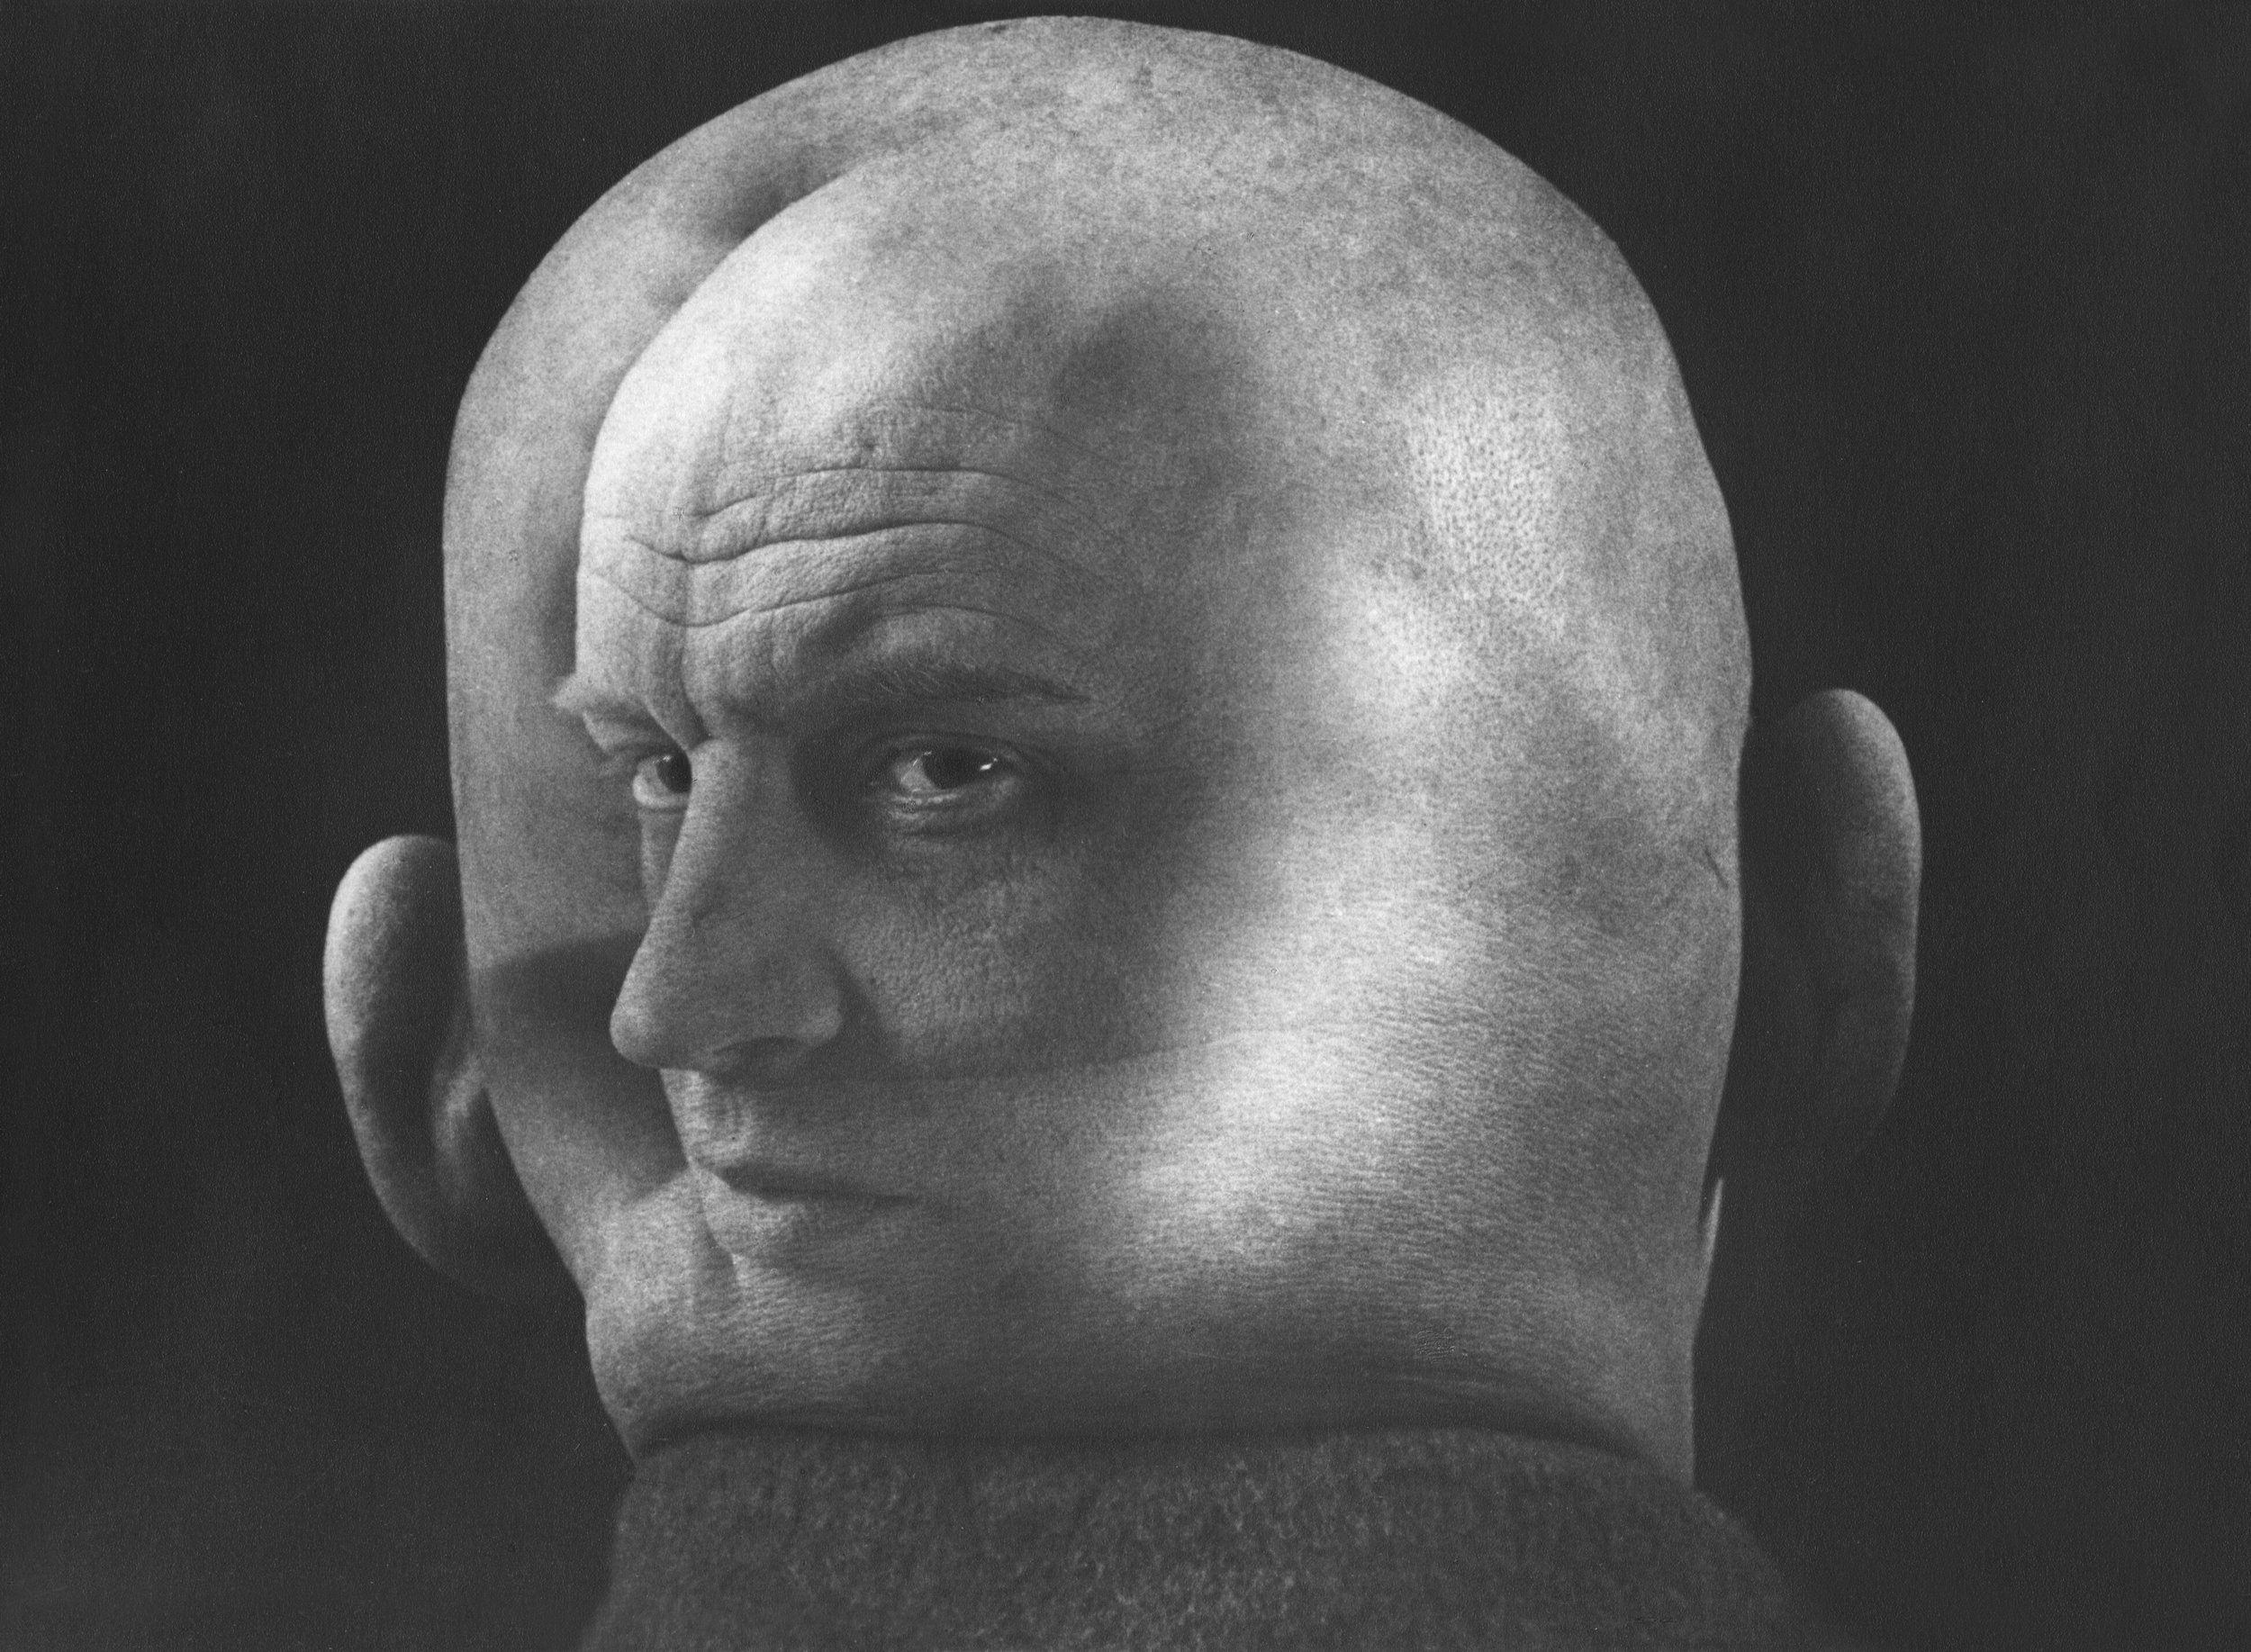 Aleksander Mikhailovich Rodchenko, artist, sculptor, photographer and graphic designer